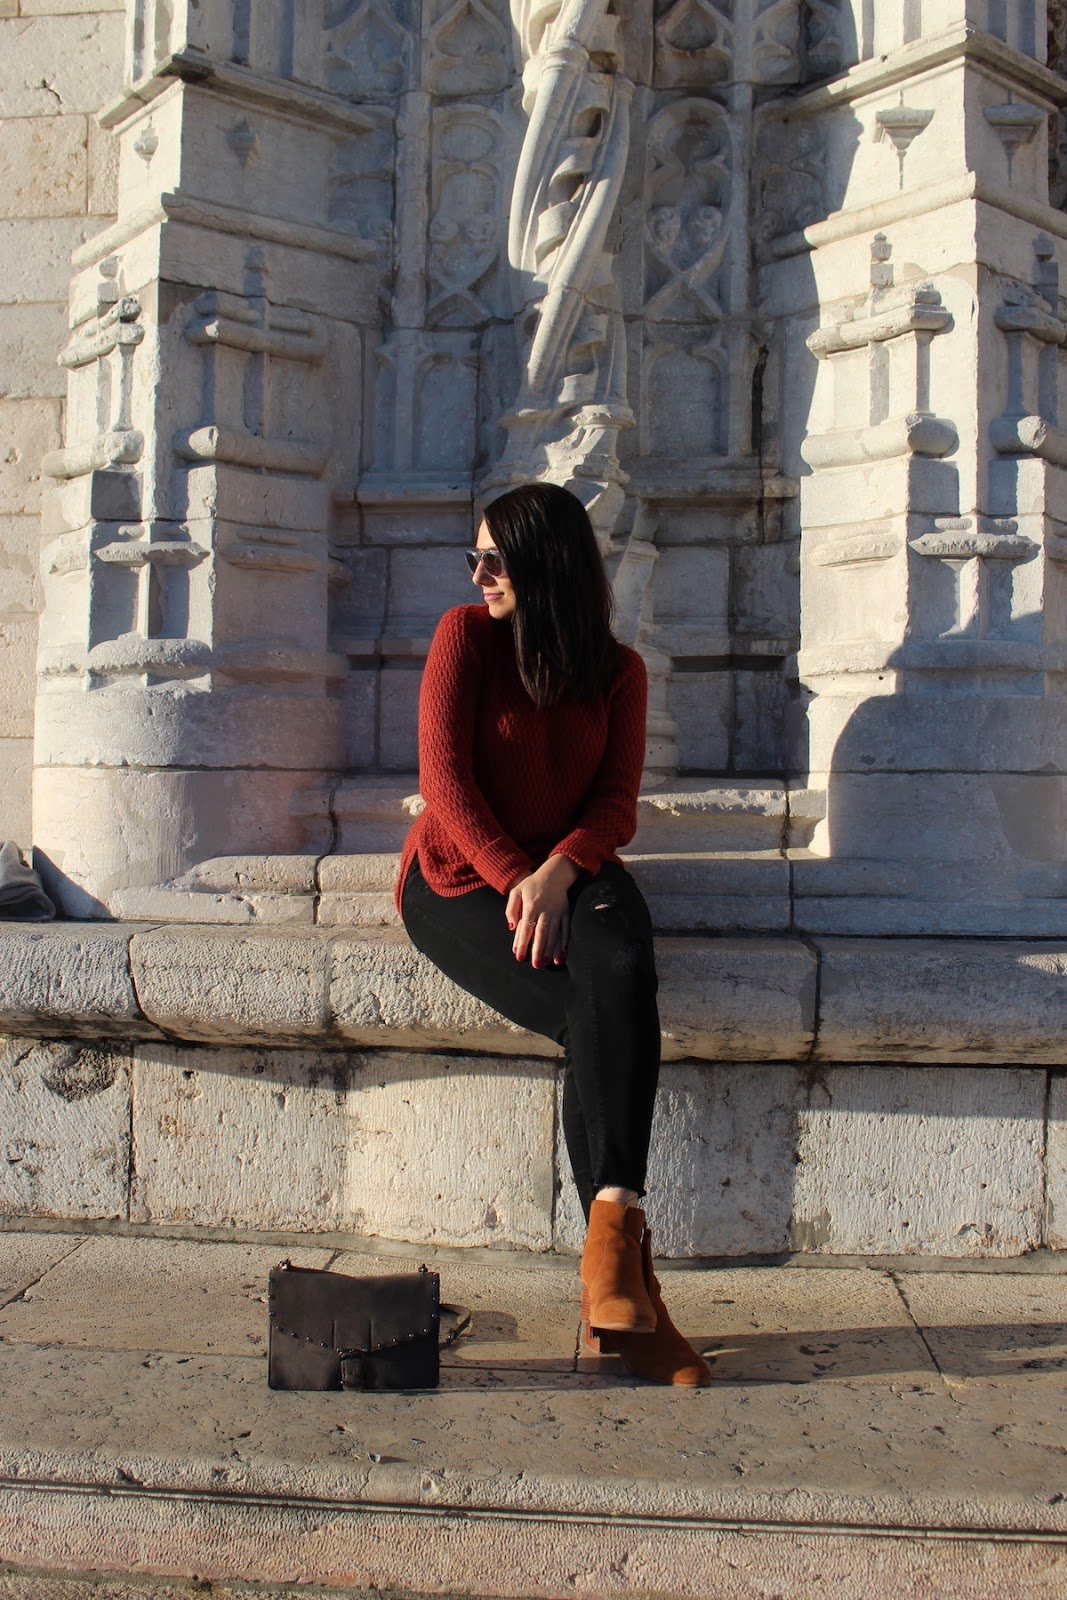 This photo is me in my red sweater, black jeans, sunglasses and heeled booties, sitting on the steps of the Lisbon Cathedral in Lisbon, Portugal.